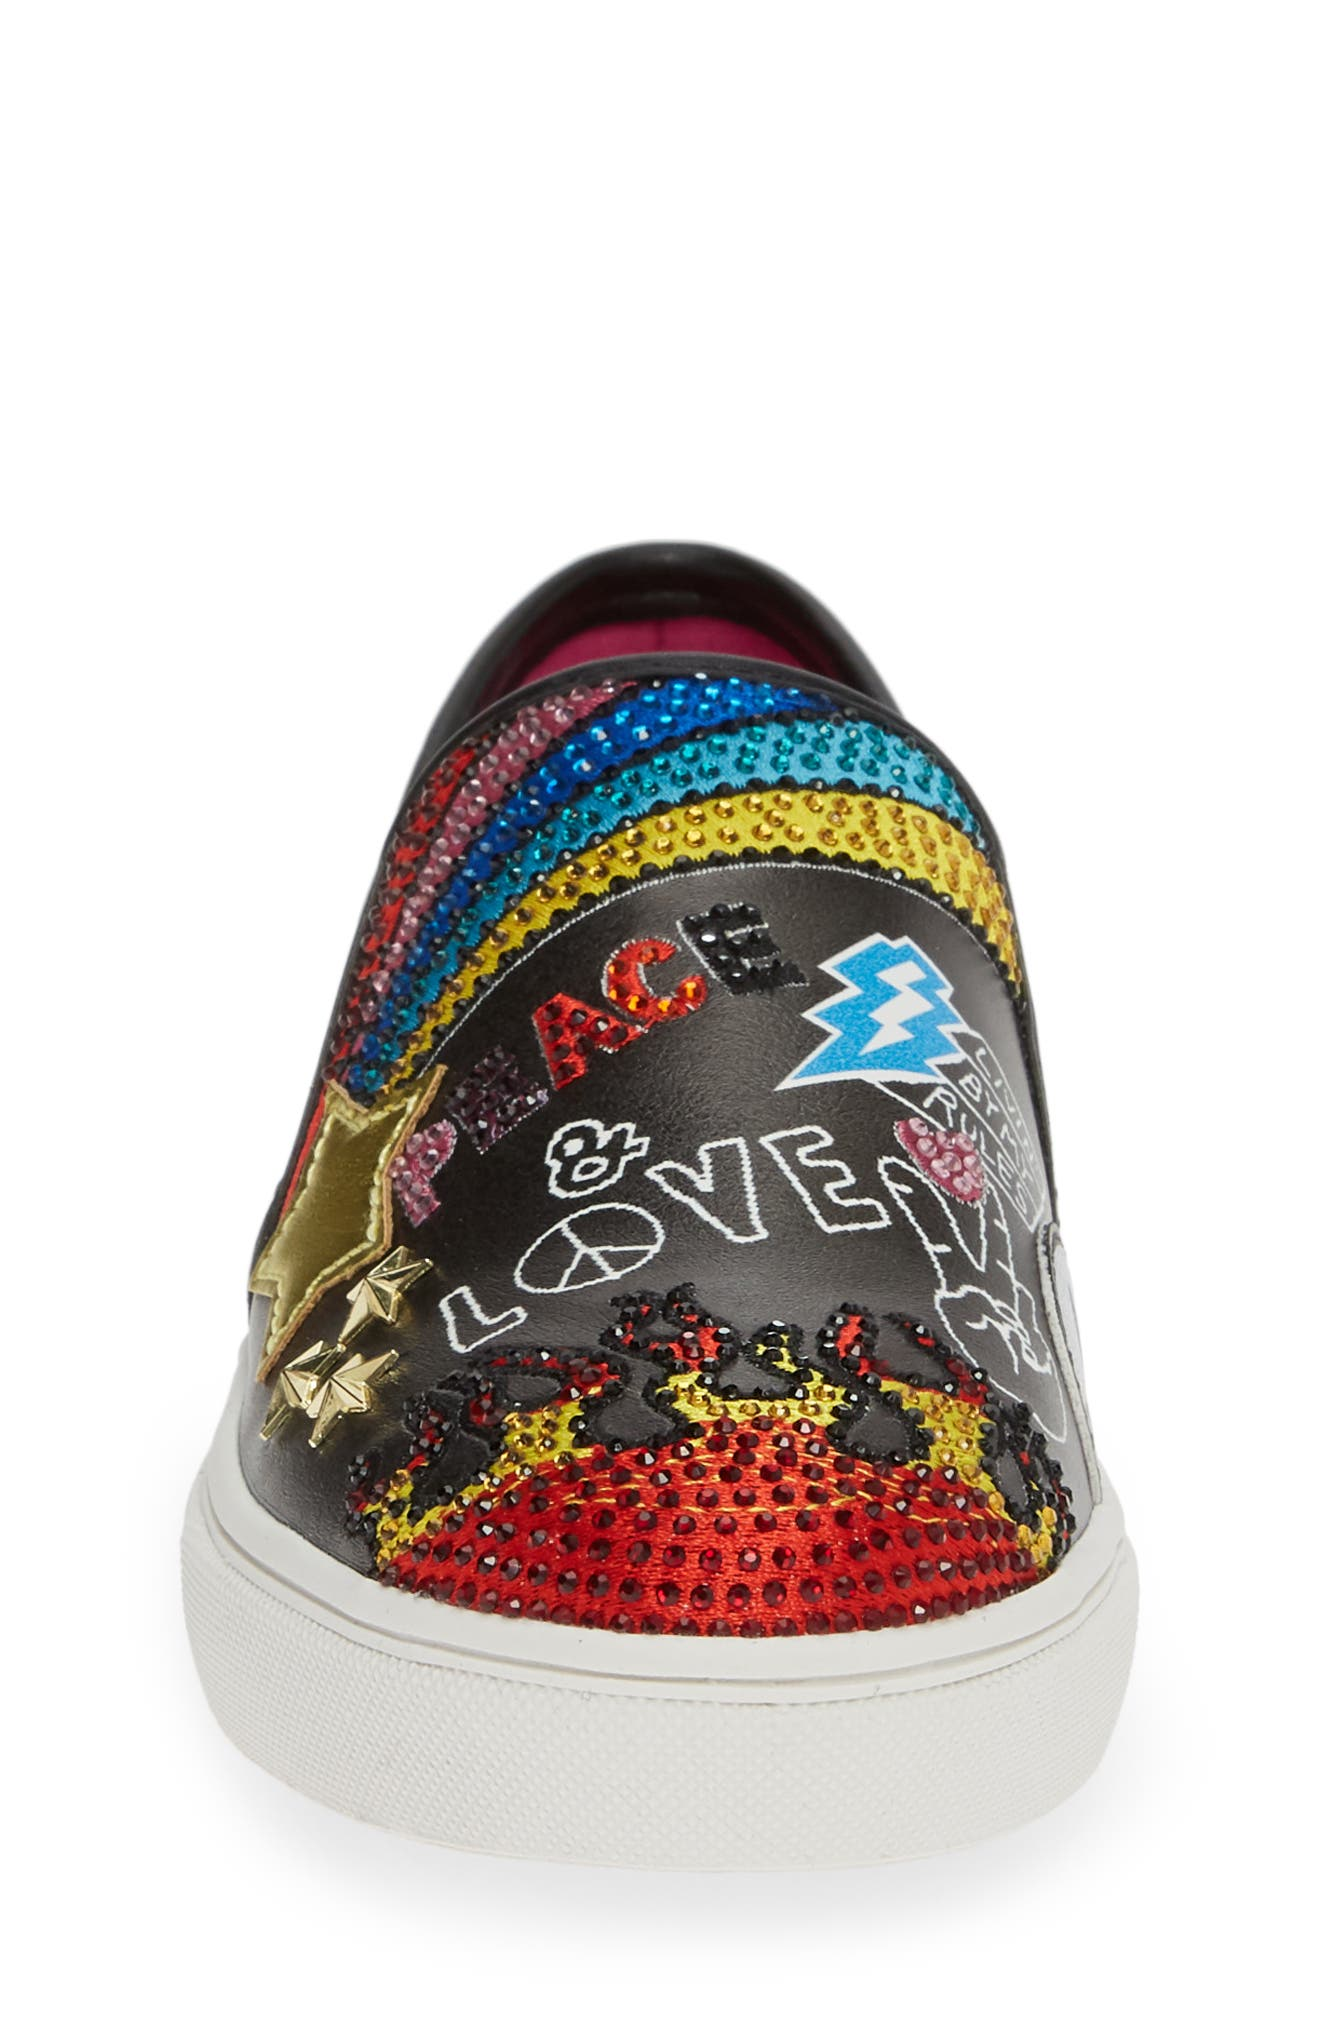 STEVE MADDEN, JPOWRFUL Embellished Slip-On Sneaker, Alternate thumbnail 4, color, BLACK MULTI